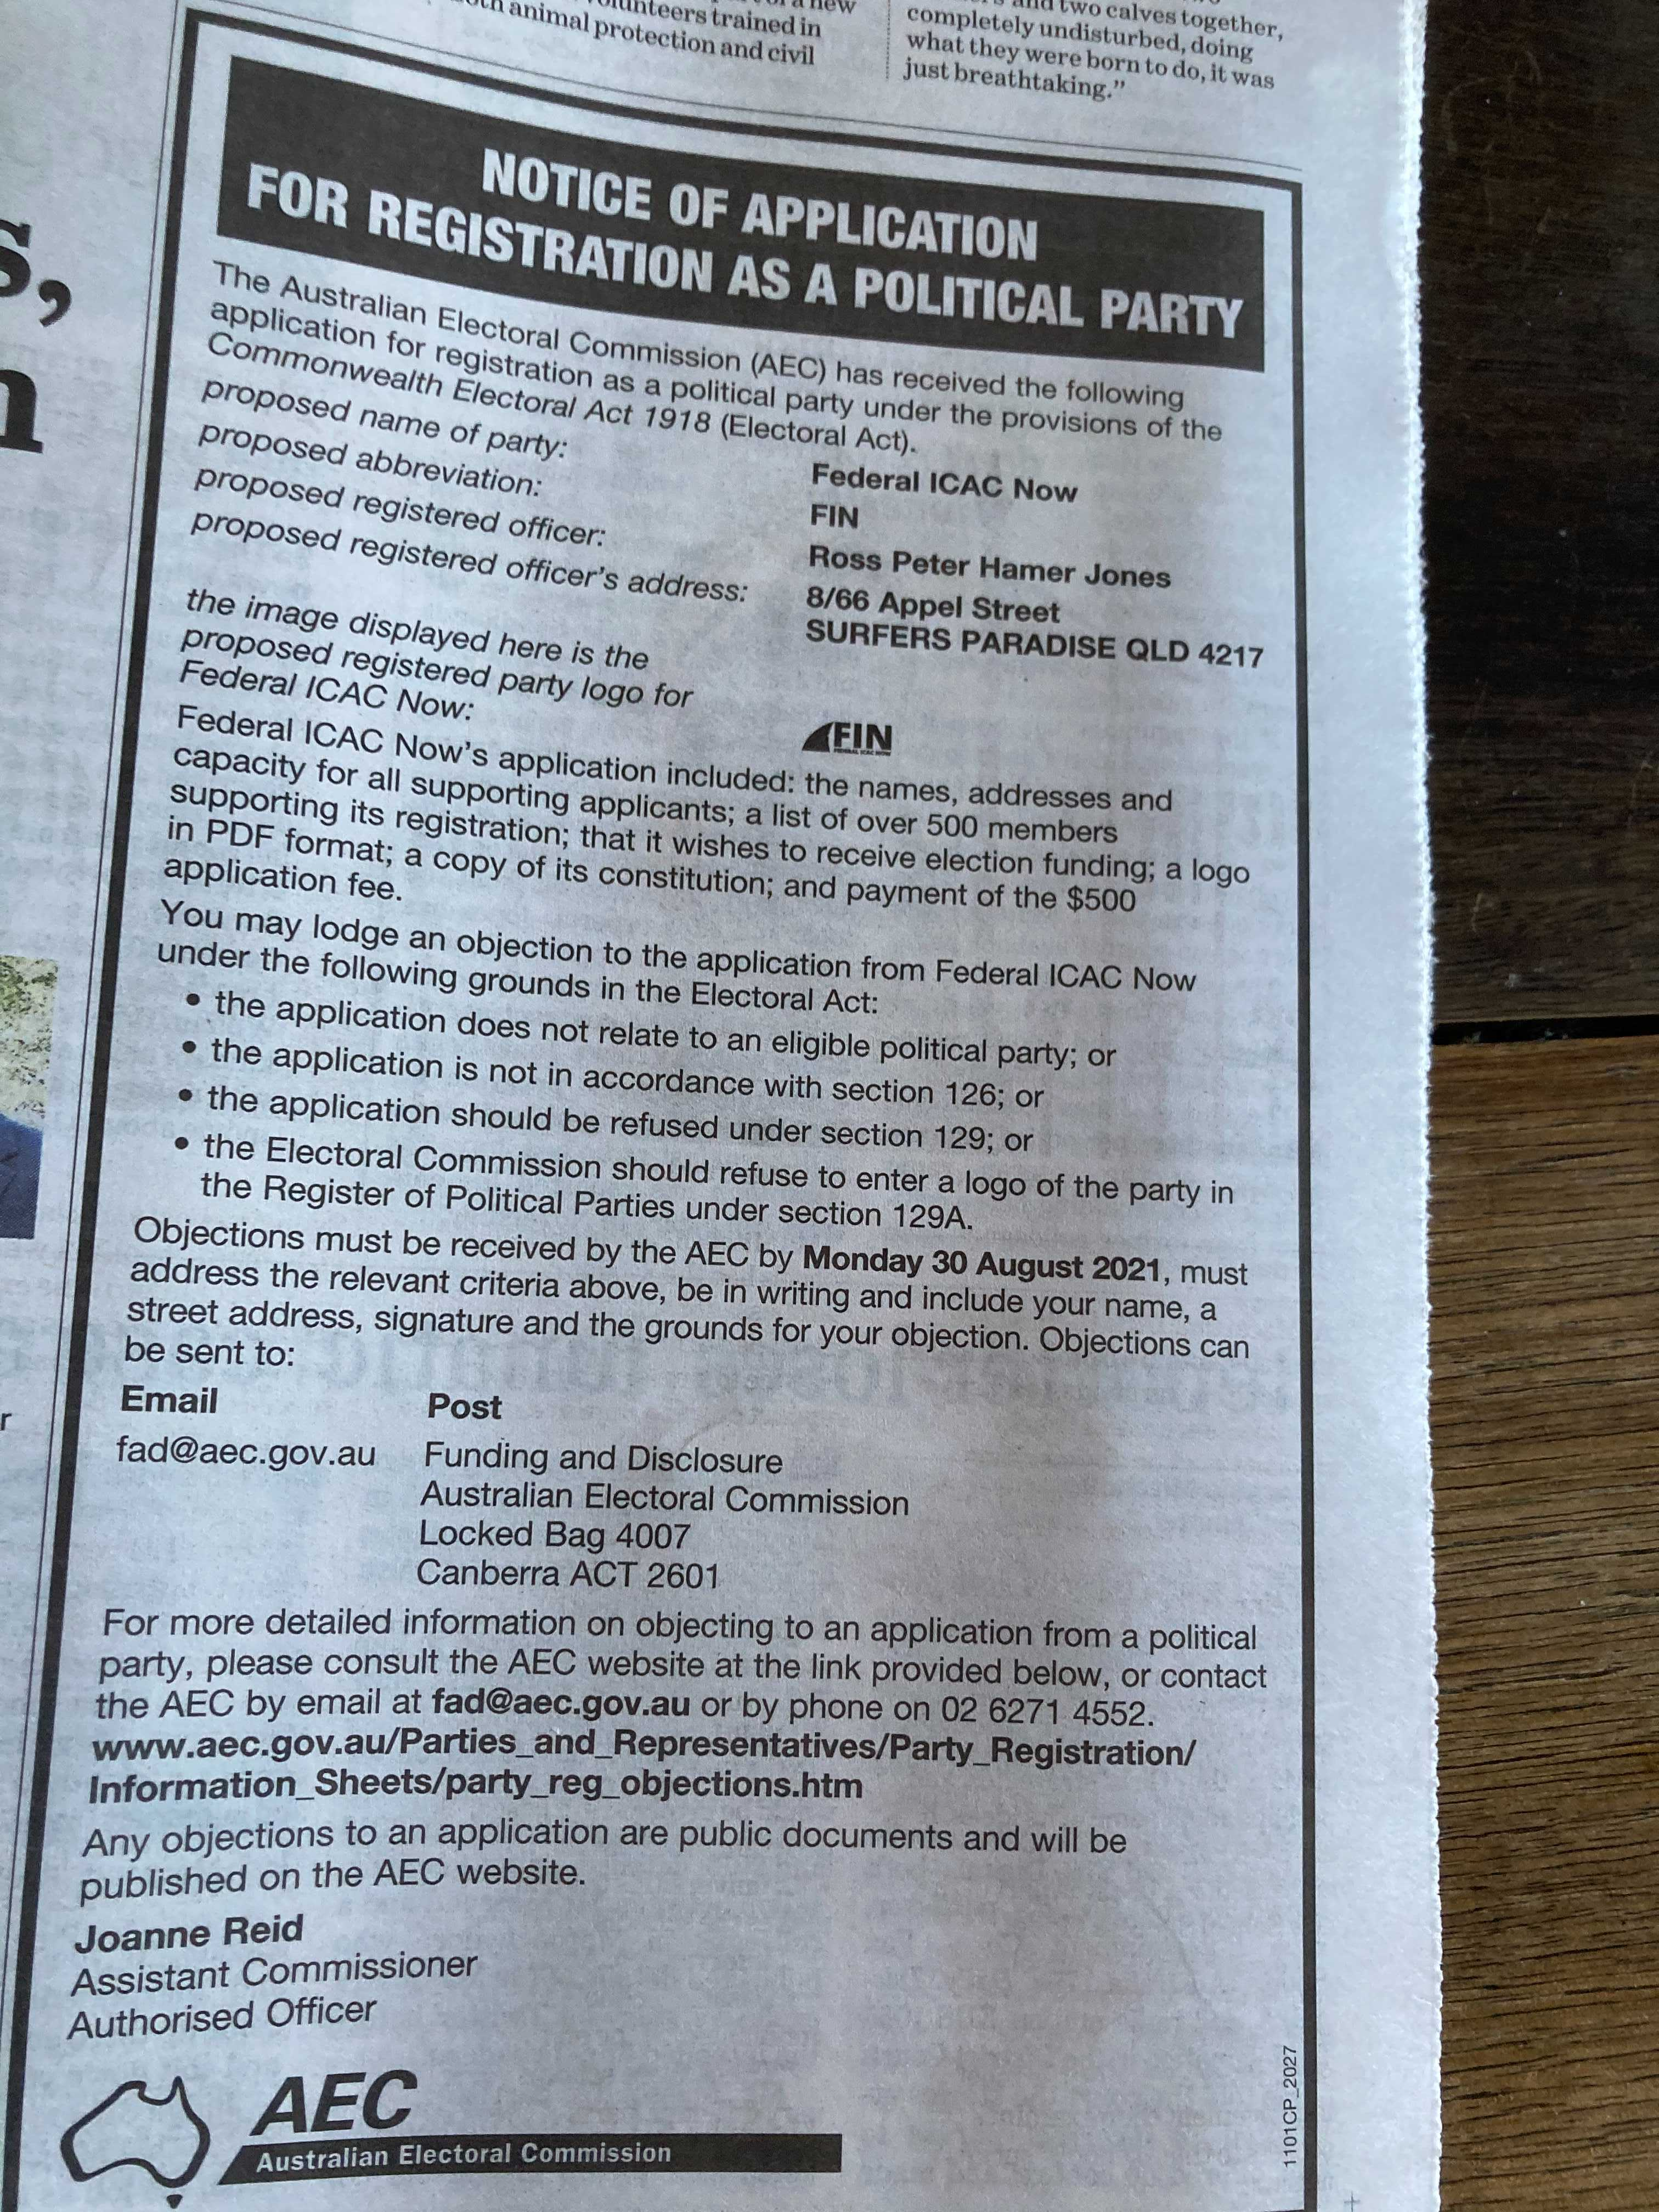 Photos of AEC Ad placed in Newspapers